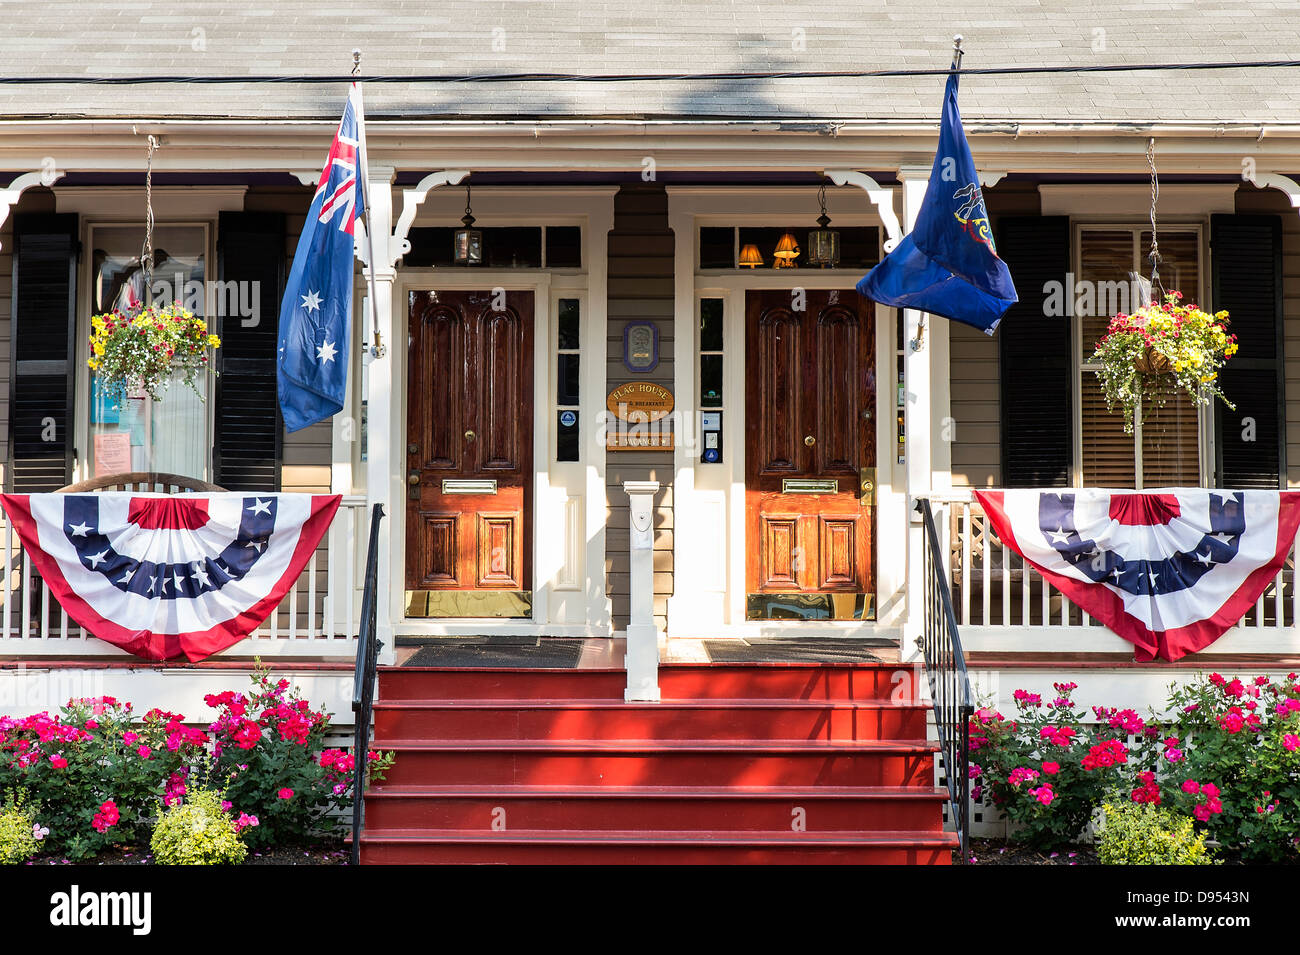 Flag House B&B, Annapolis, Maryland, USA - Stock Image